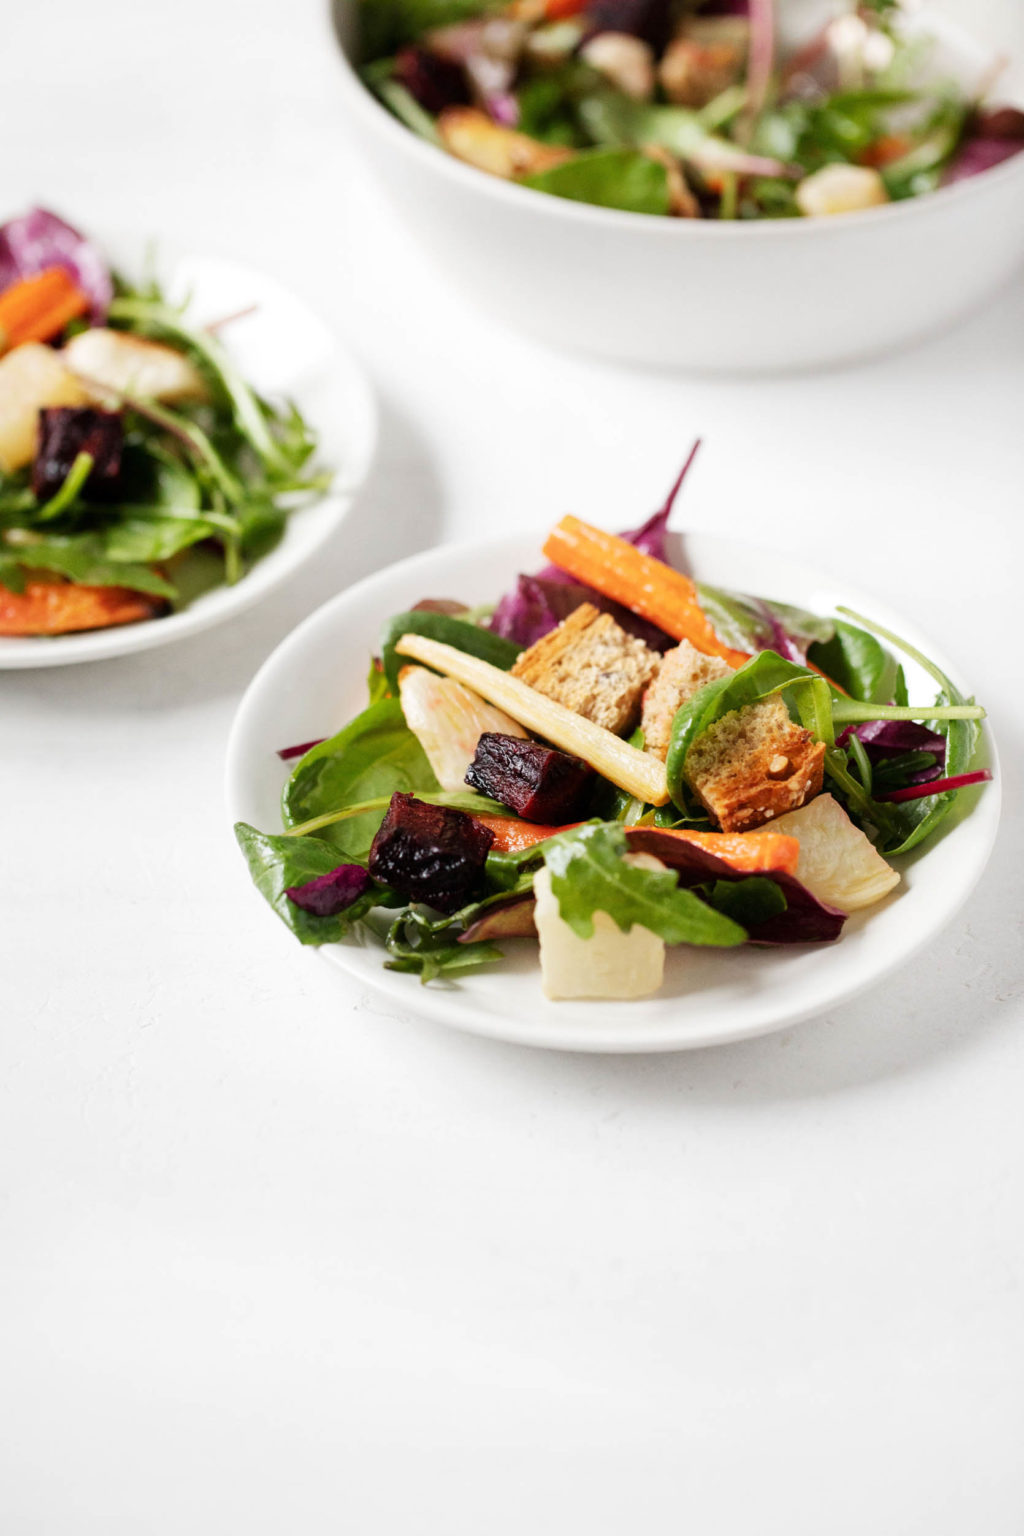 An angled photo of small salad plates, topped with roasted root vegetables, greens, and cubed bread.